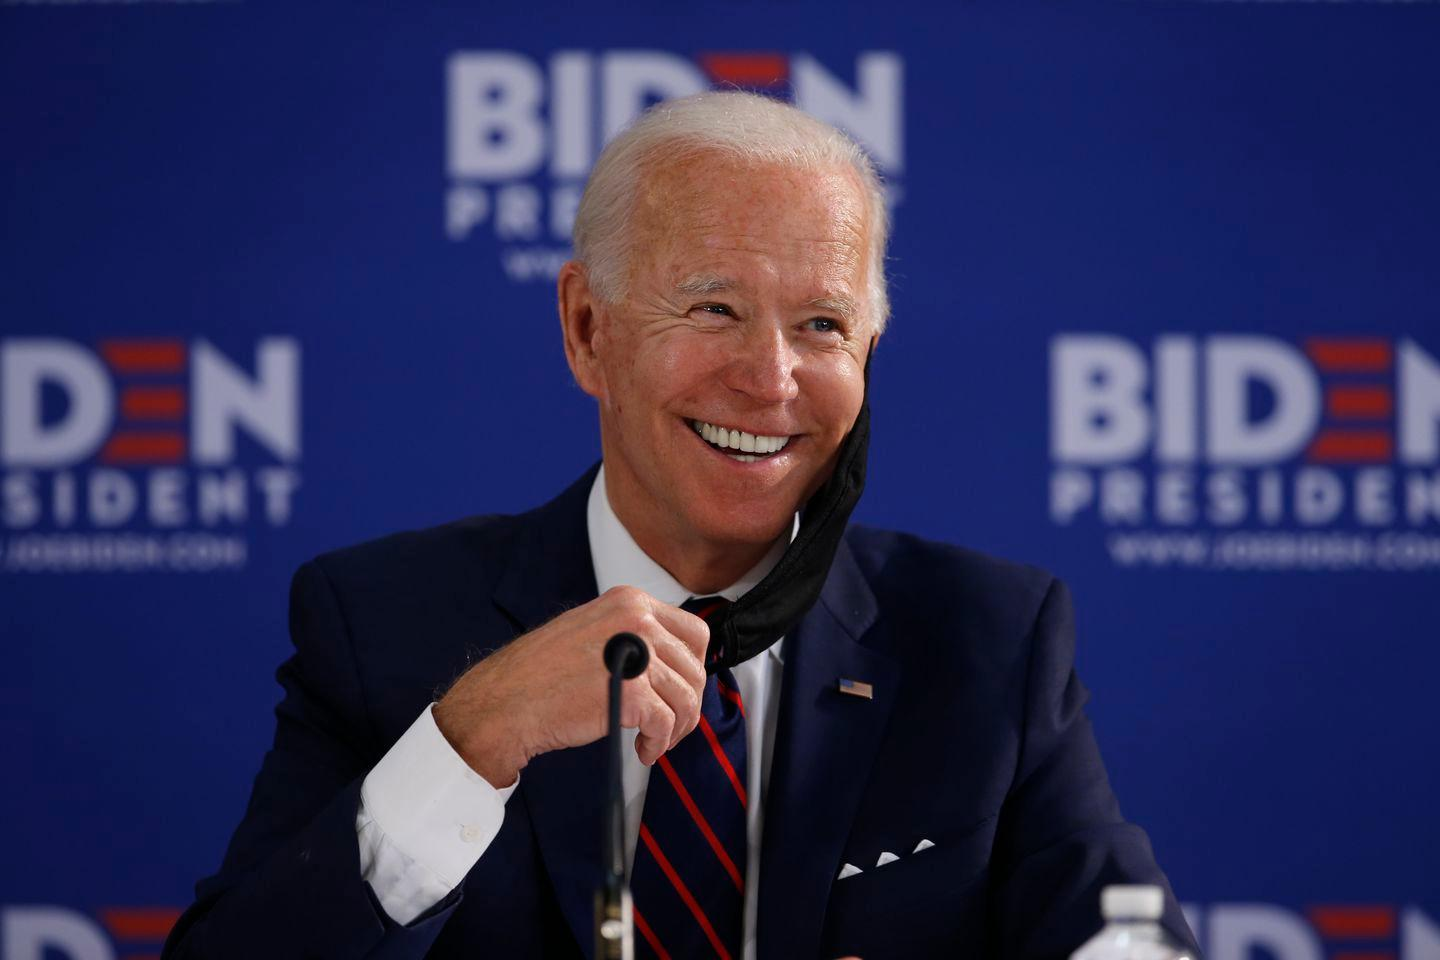 Joe Biden Delivers Powerful And Inspiring First Speech As The New President - Swears To Unite The Divided Country!